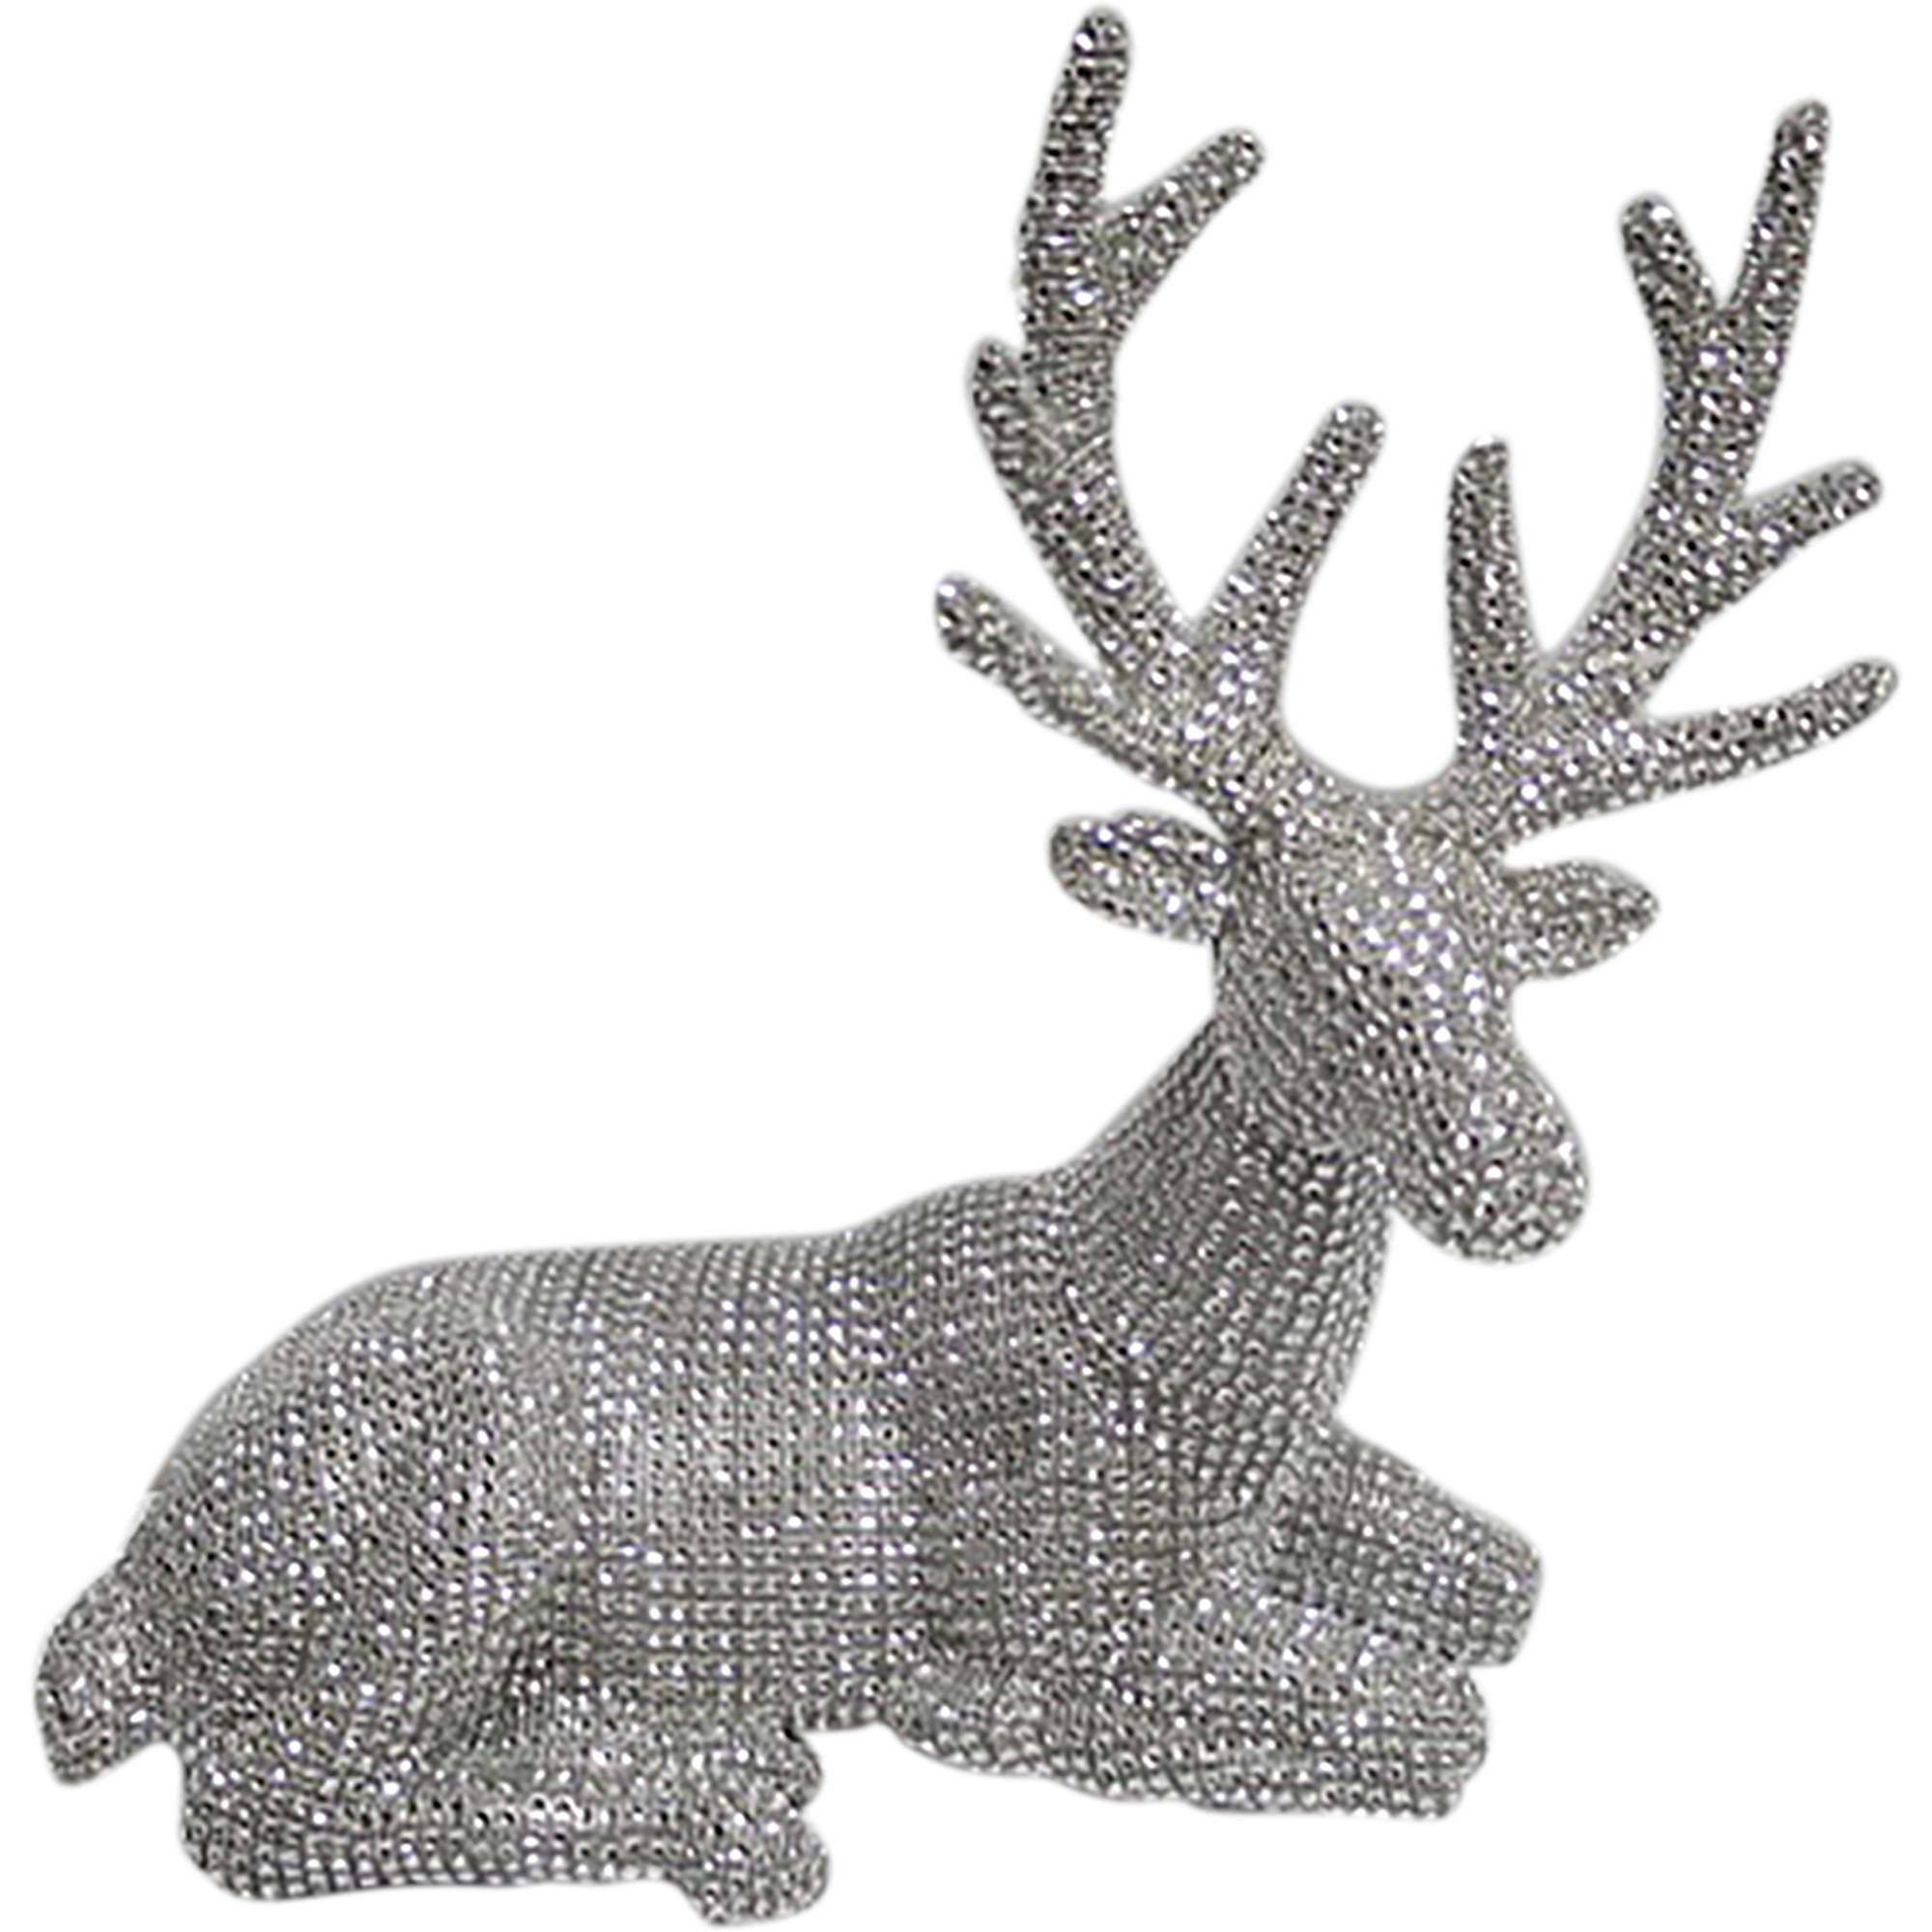 holiday time christmas decor pave sliver sit deer decor walmartcom - Christmas Deer Decor